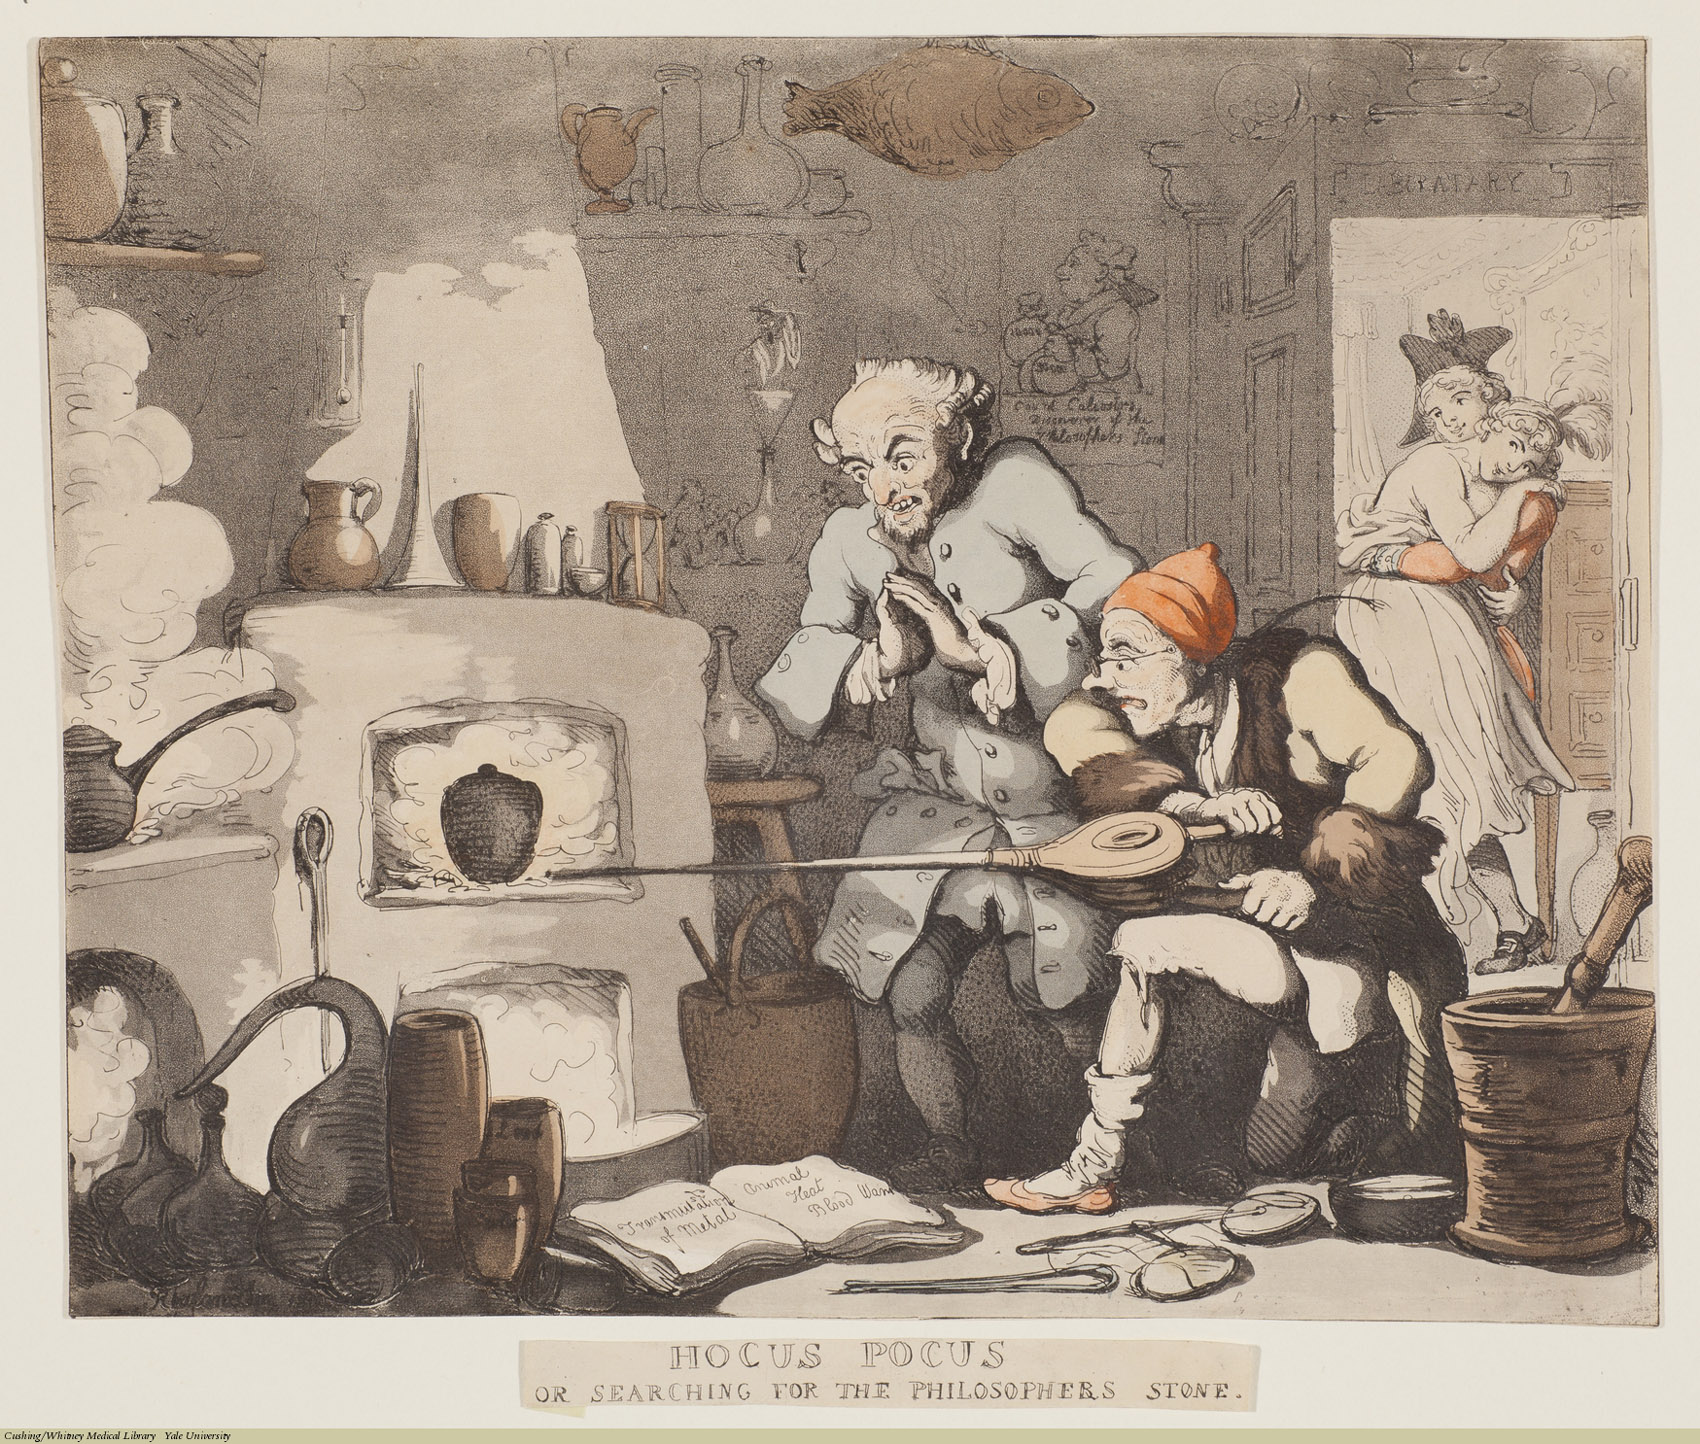 Hocus Pocus Or Searching For The Philosopher's Stone. Thomas Rowlandson, Aquatint coloured, 1800. Subject: Count Alexander Cagliostro (Giuseppe Balsamo), Alchemy, Sex.